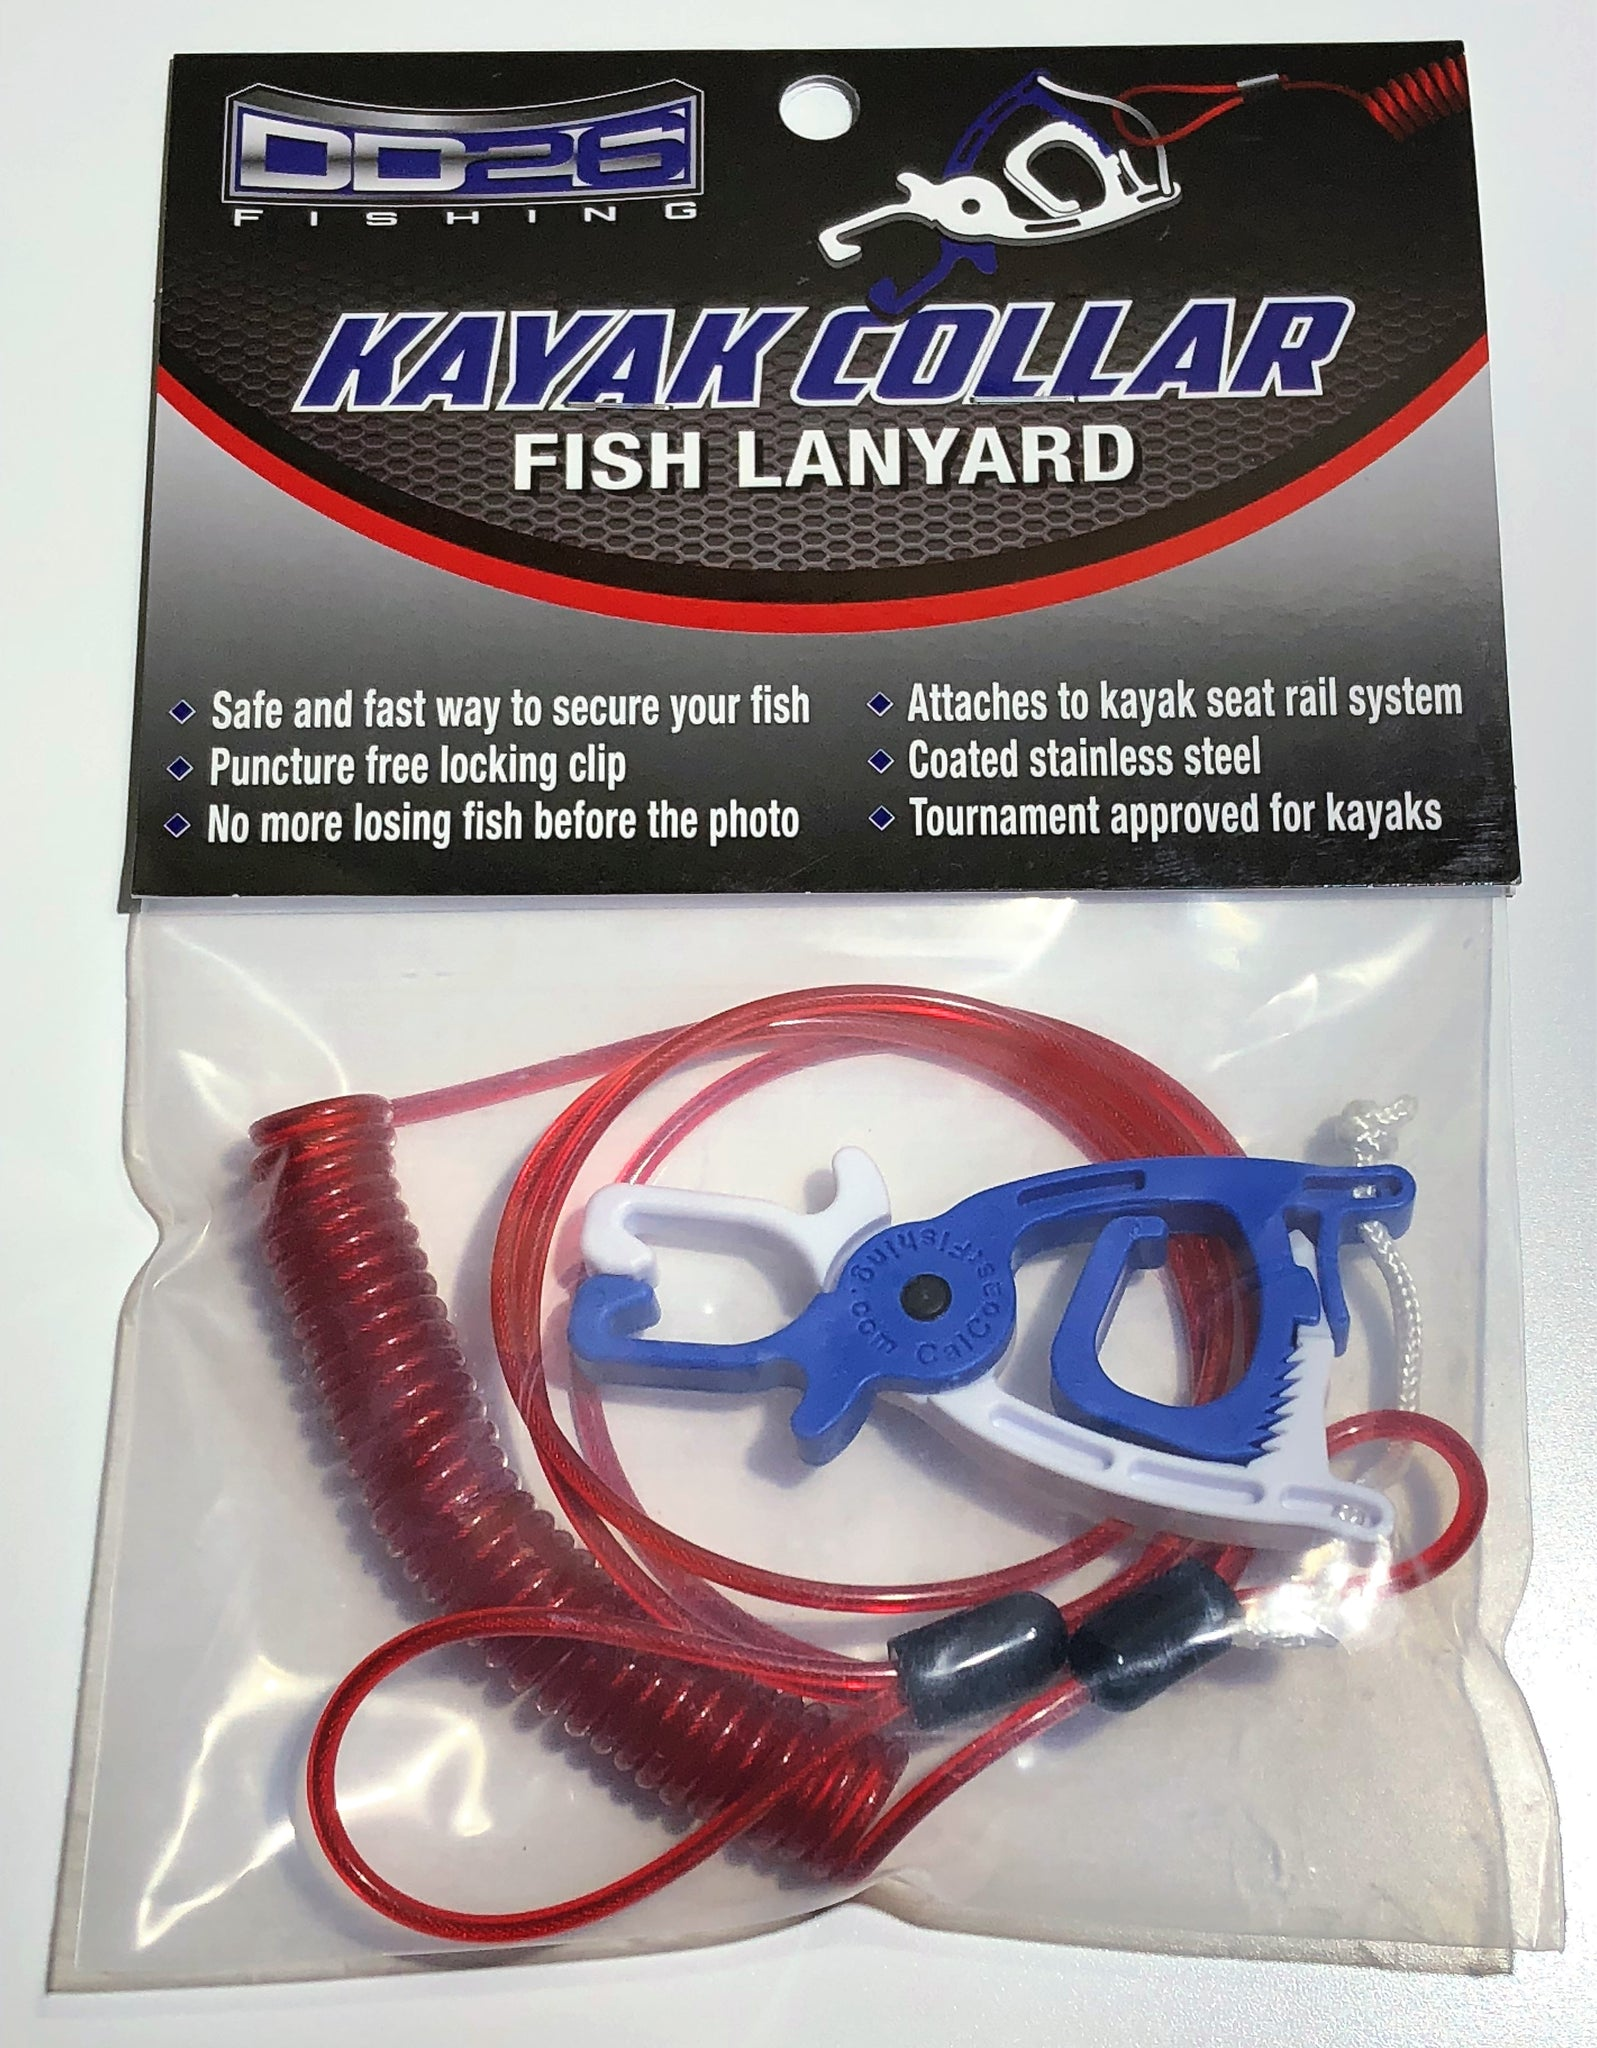 DD26 Kayak Collar Fish Lanyard